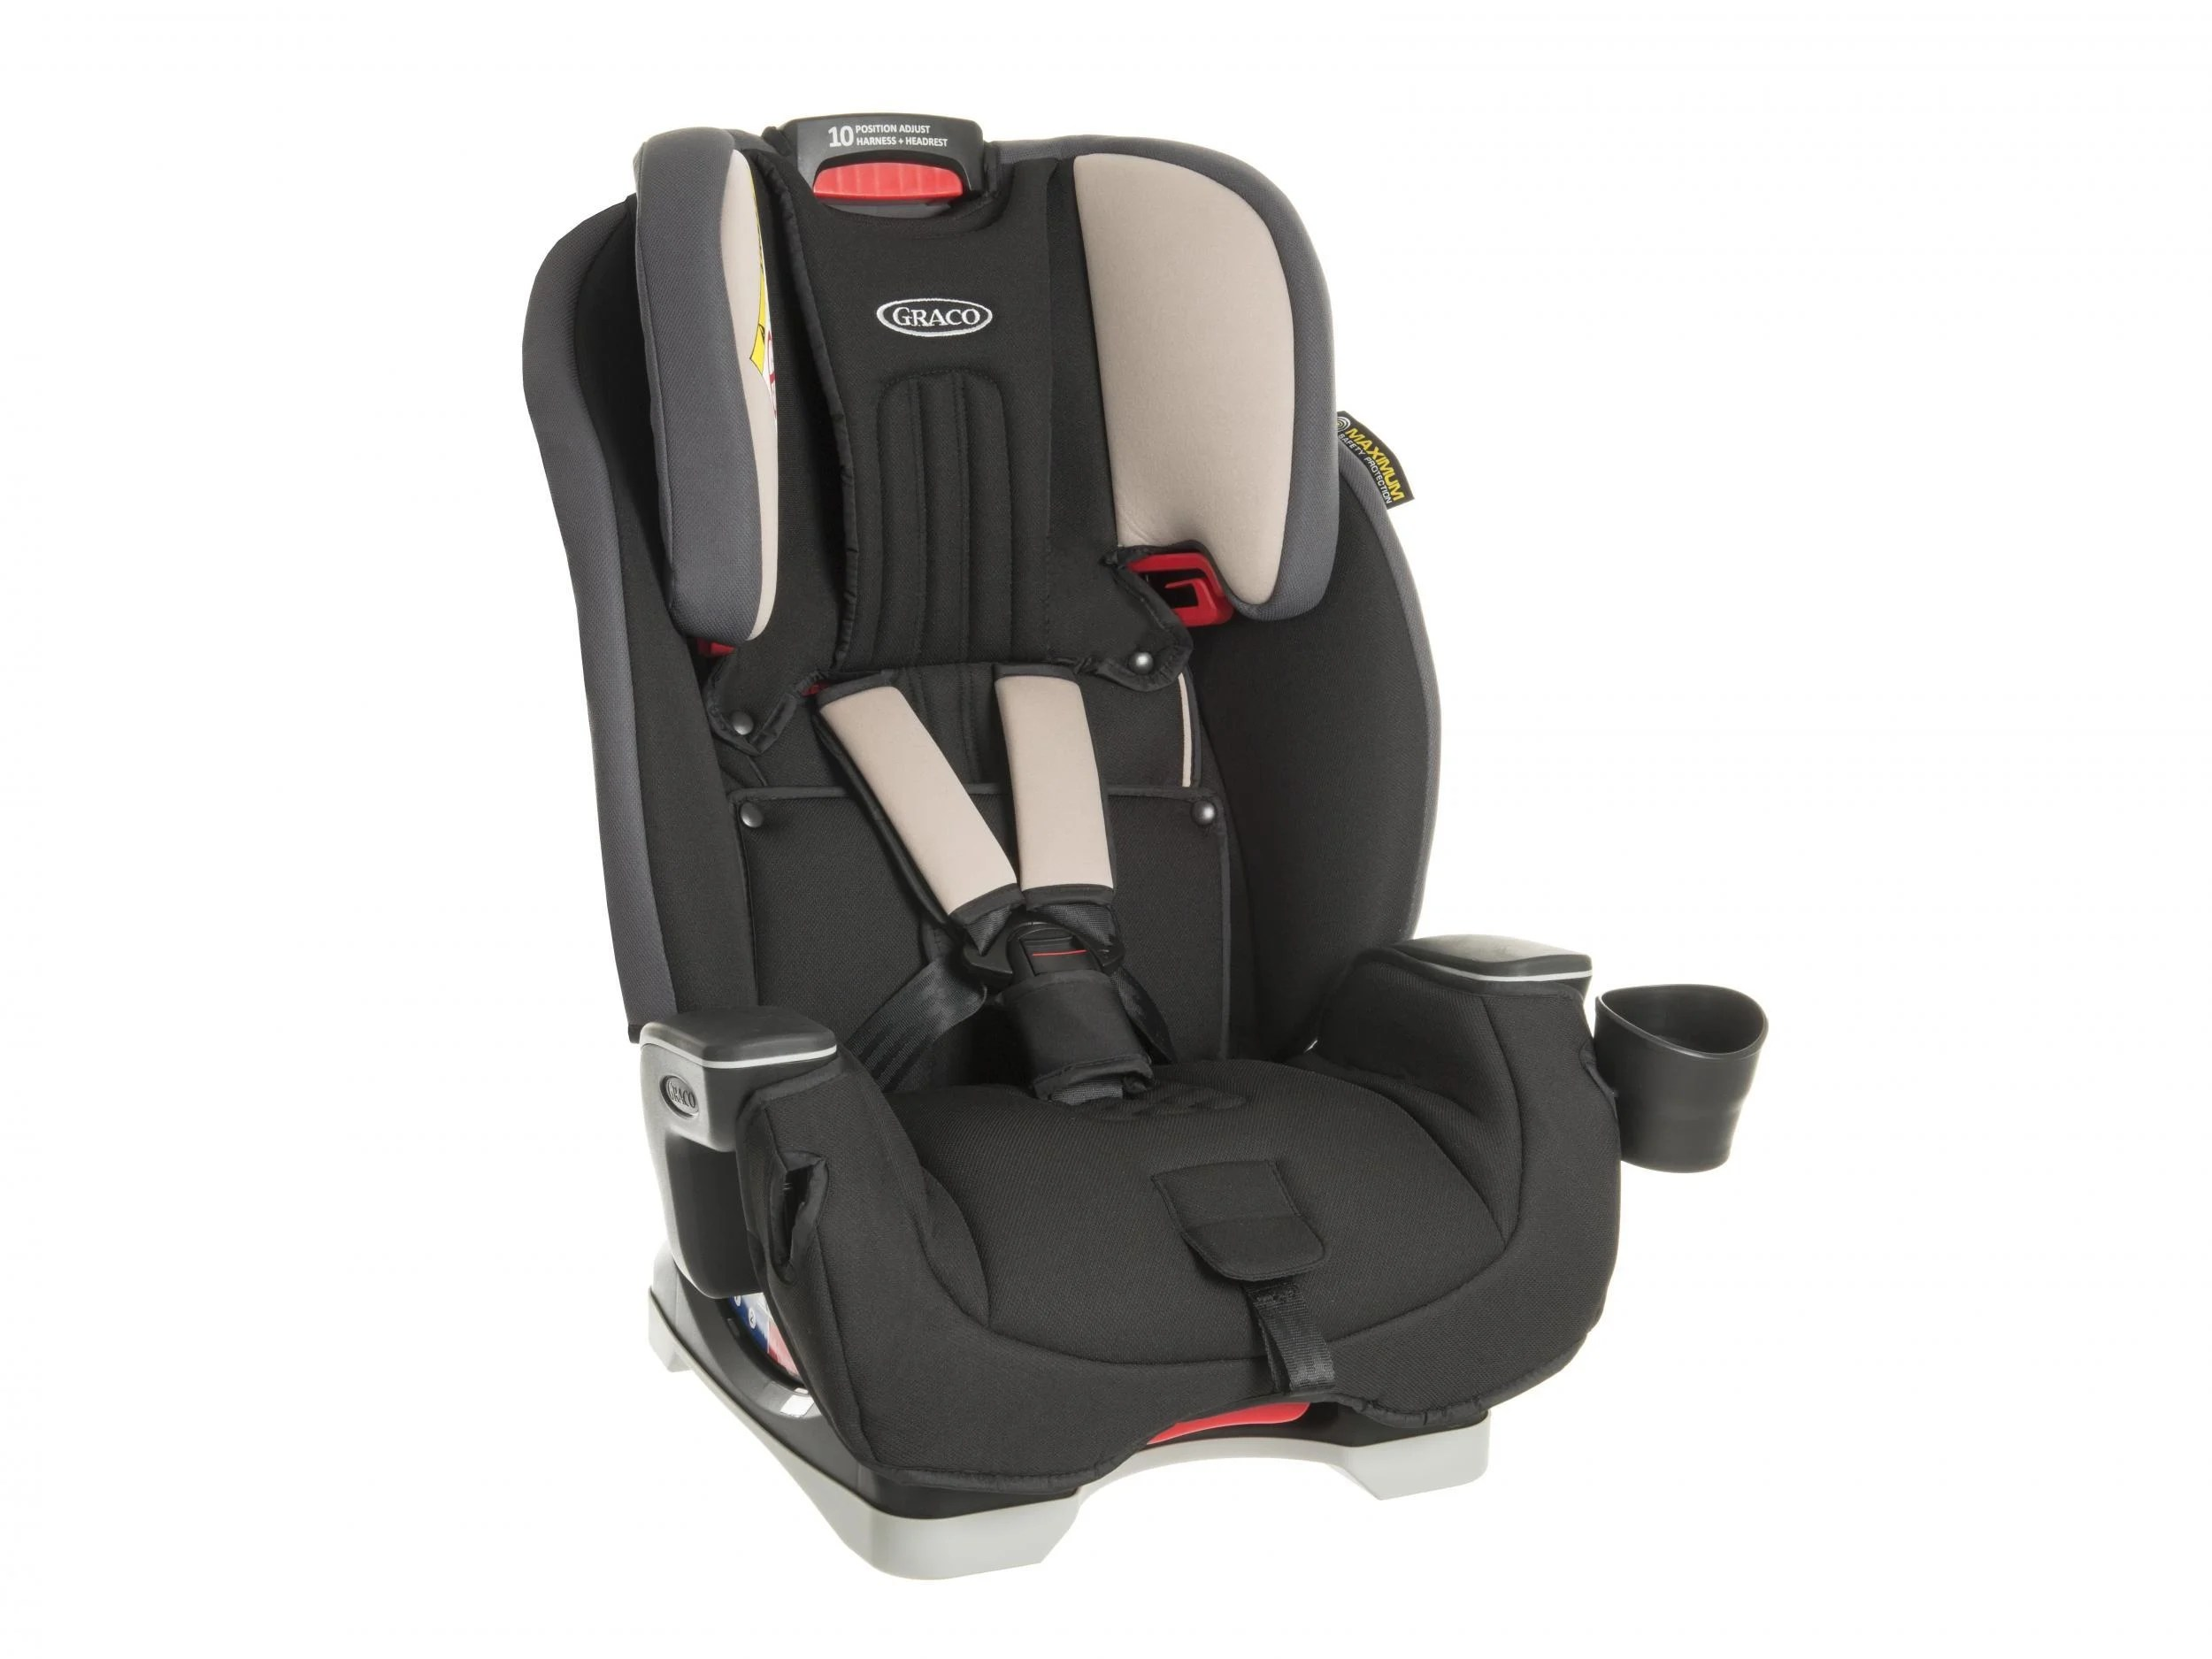 Infant Seat Vs Safety Seat Best Infant Car Seat Choose From Group And I Size